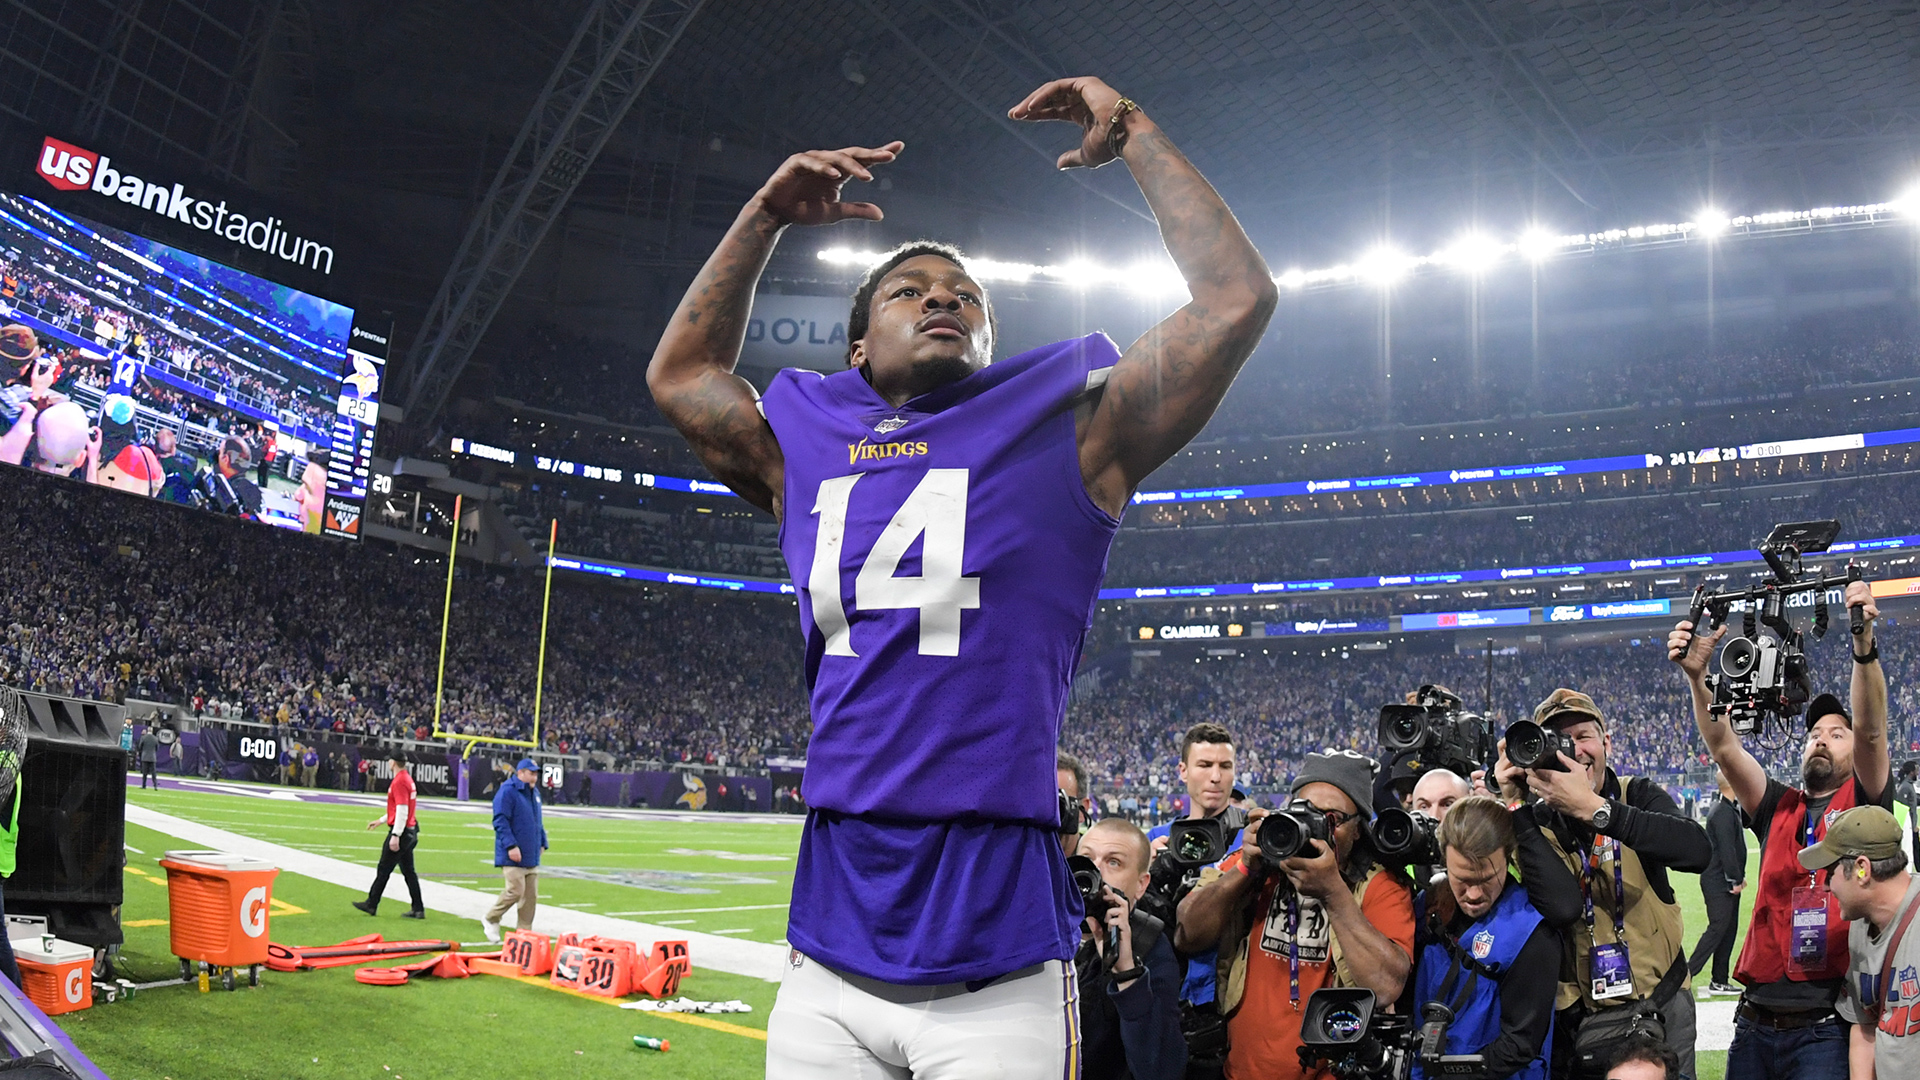 Minnesota Vikings wide receiver Stefon Diggs (14) gestures to the crowd, celebrating a last-second touchdown reception during an NFC Divisional playoff game in Minneapolis allowing the Vikings to advance into the NFC Championship game against the Eagles.